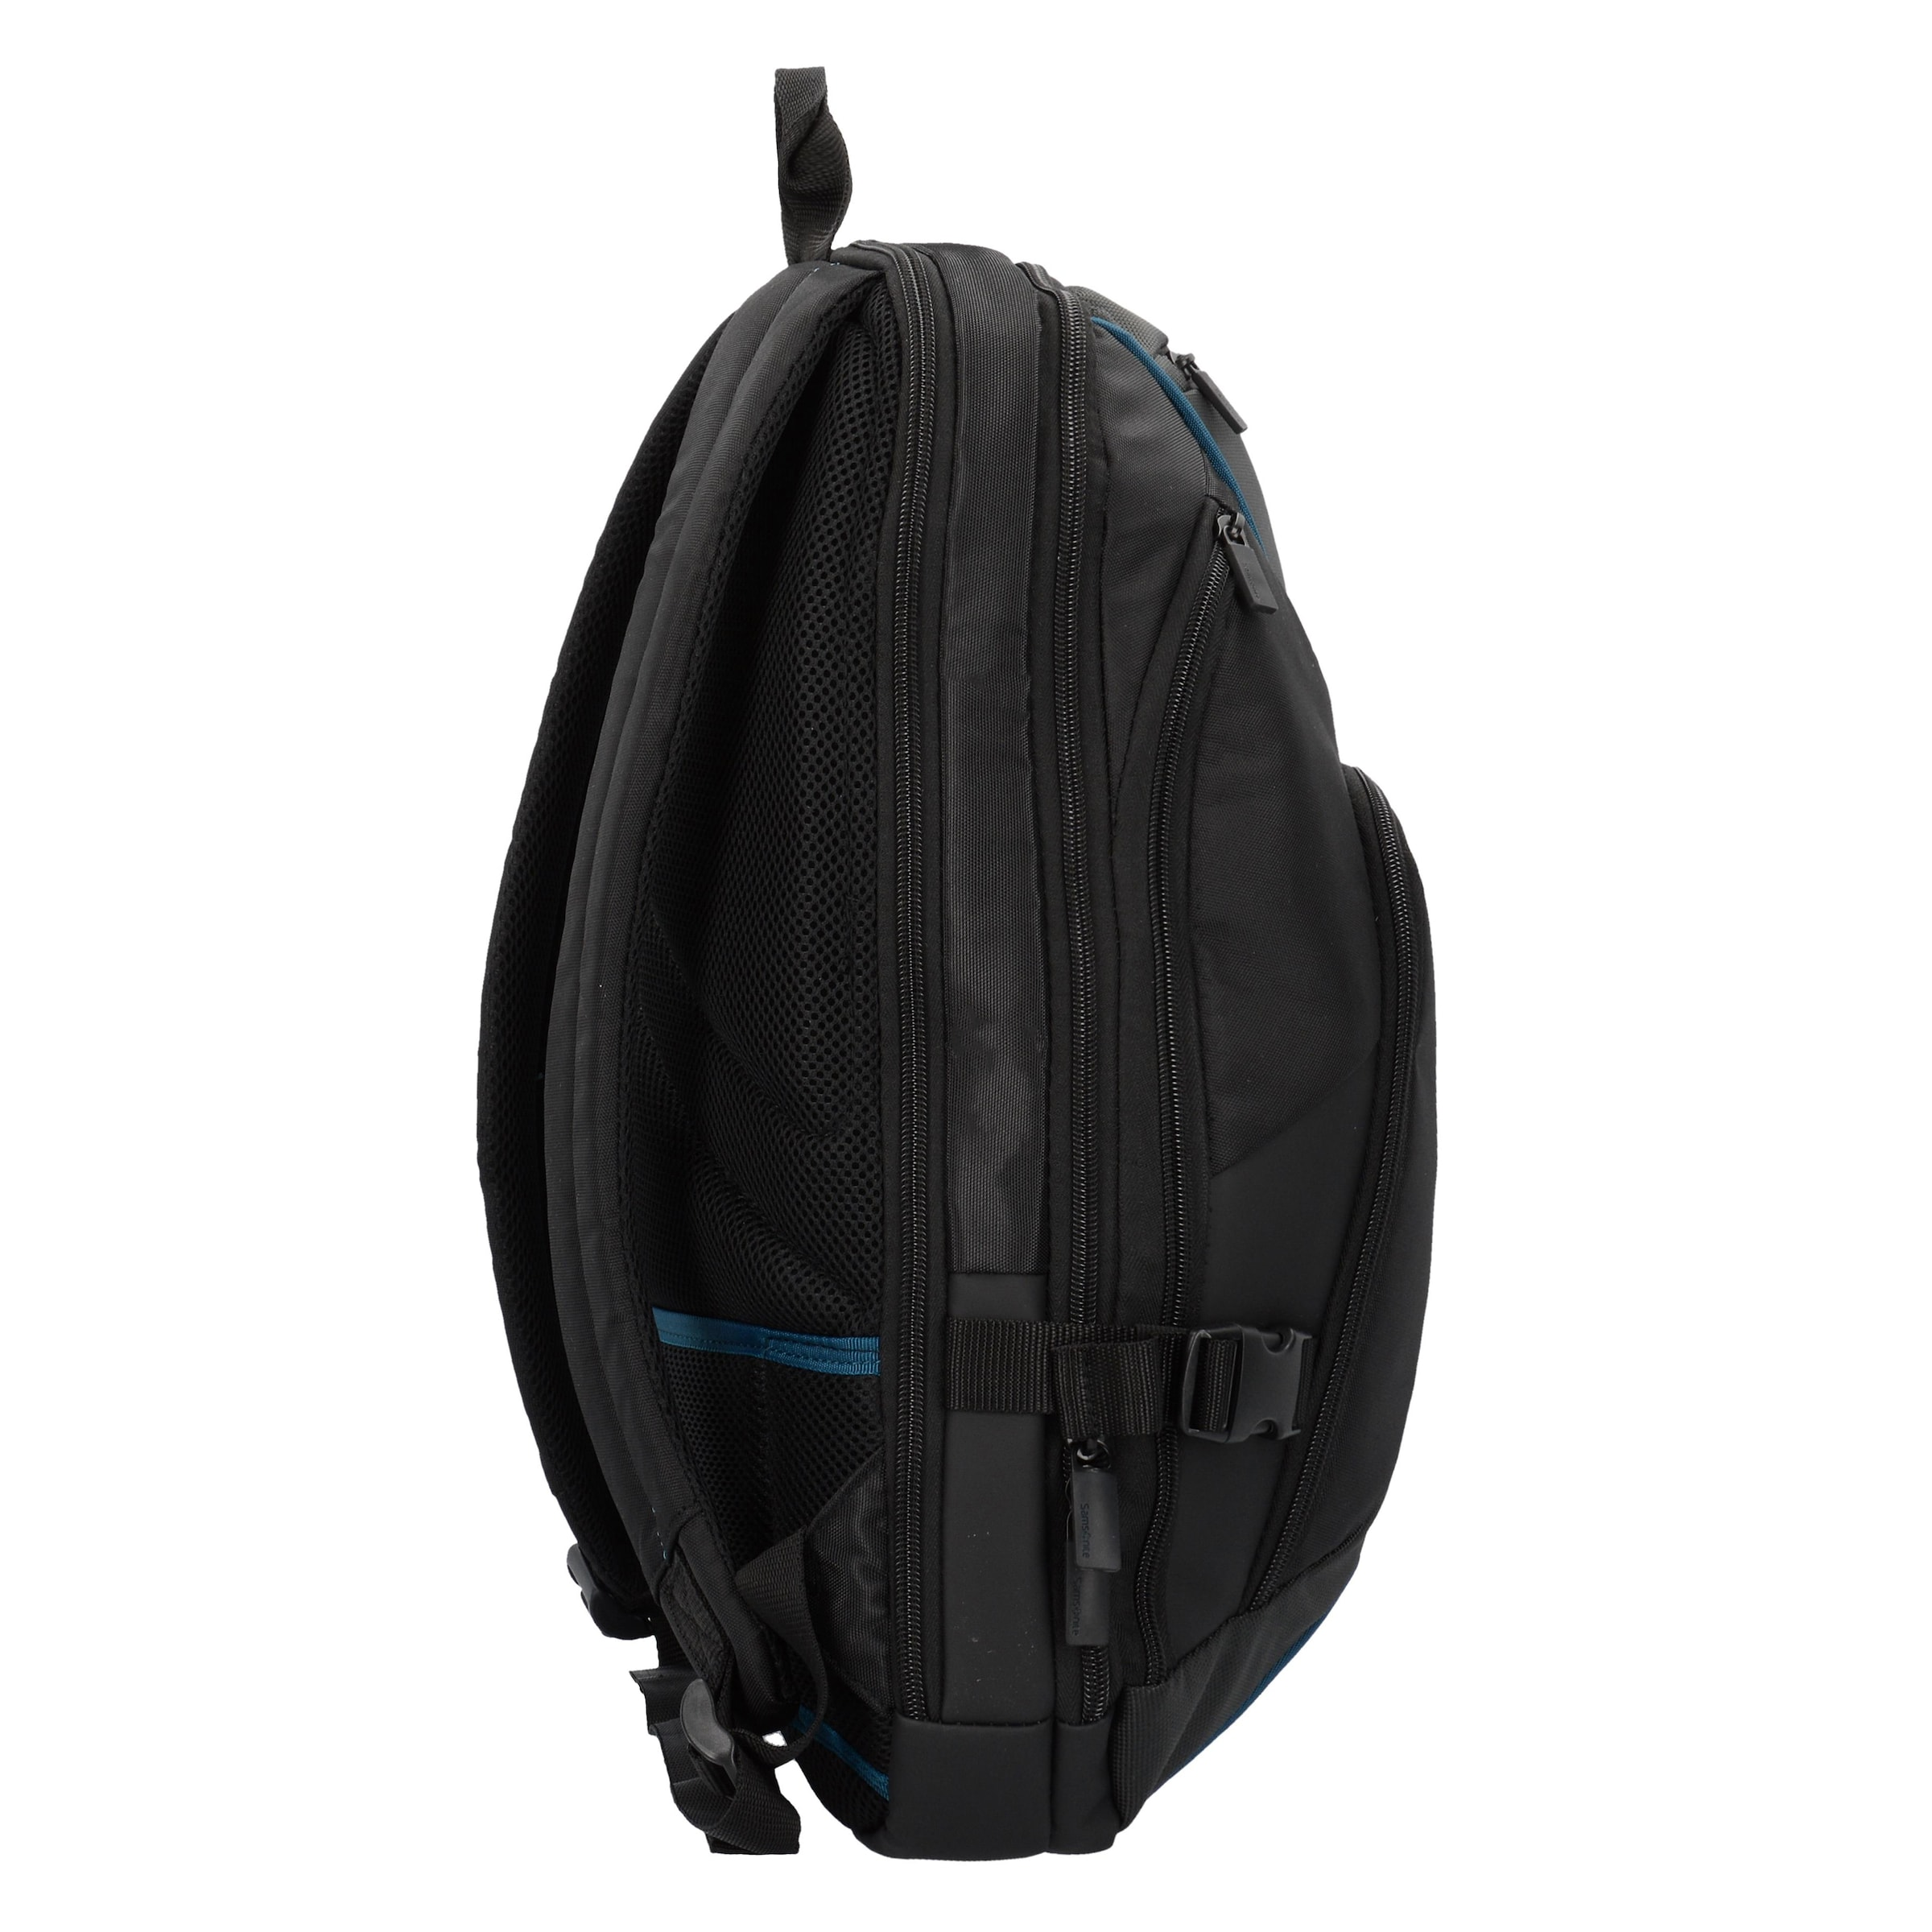 Business Rucksack Samsonite Schwarz In 'kleur' 2WE9HDIeY